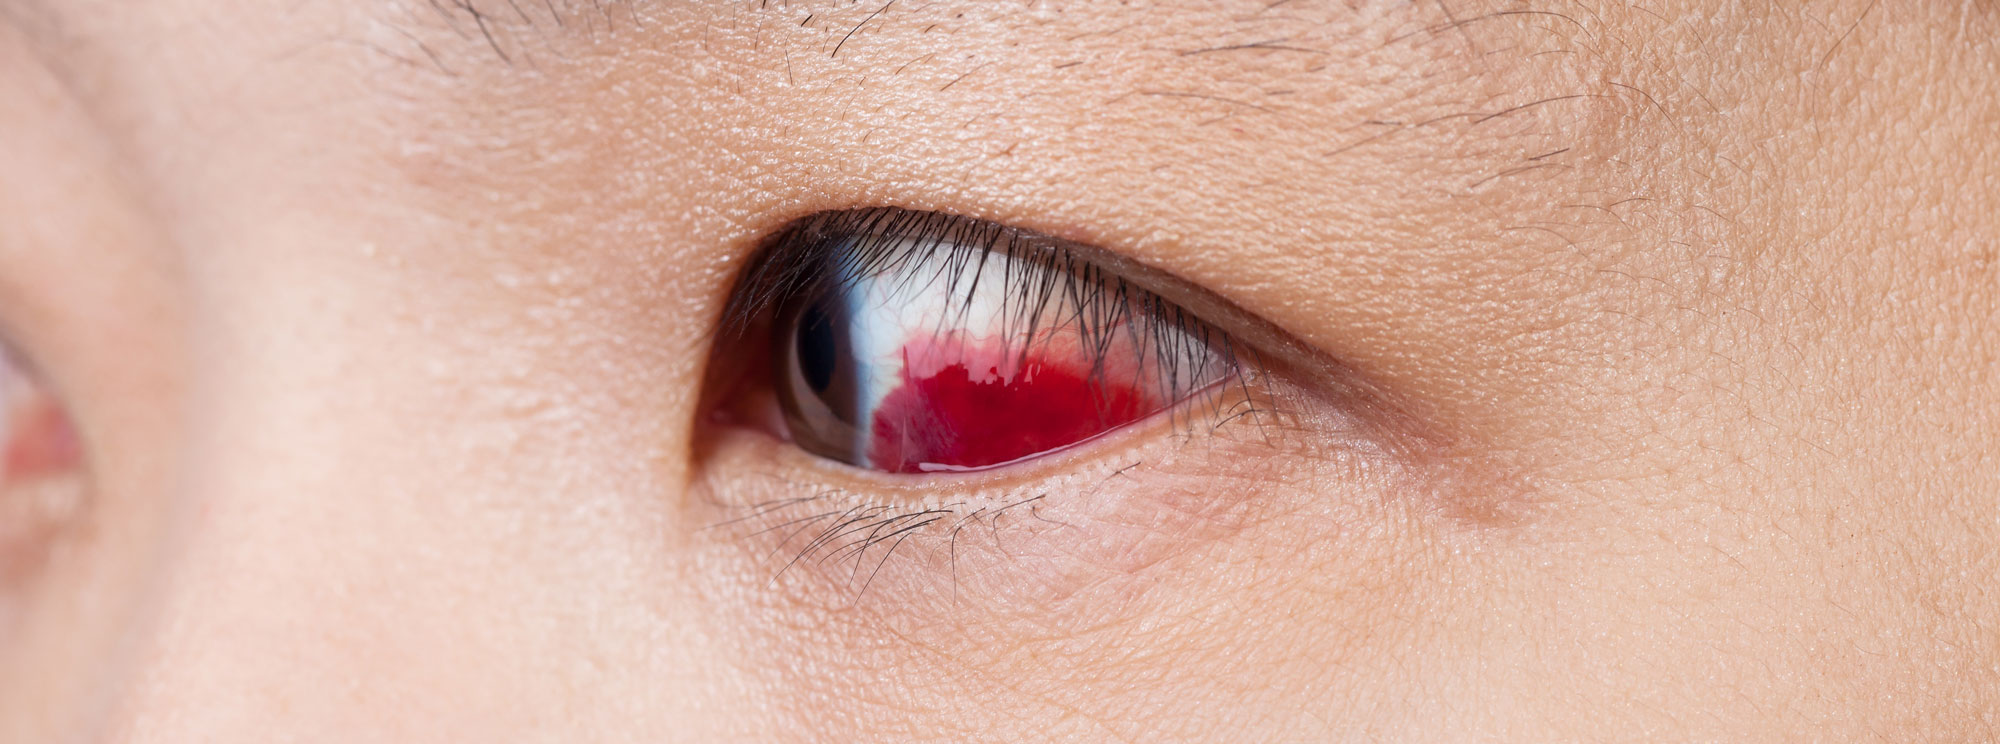 close up of woman's eye with retinal tear